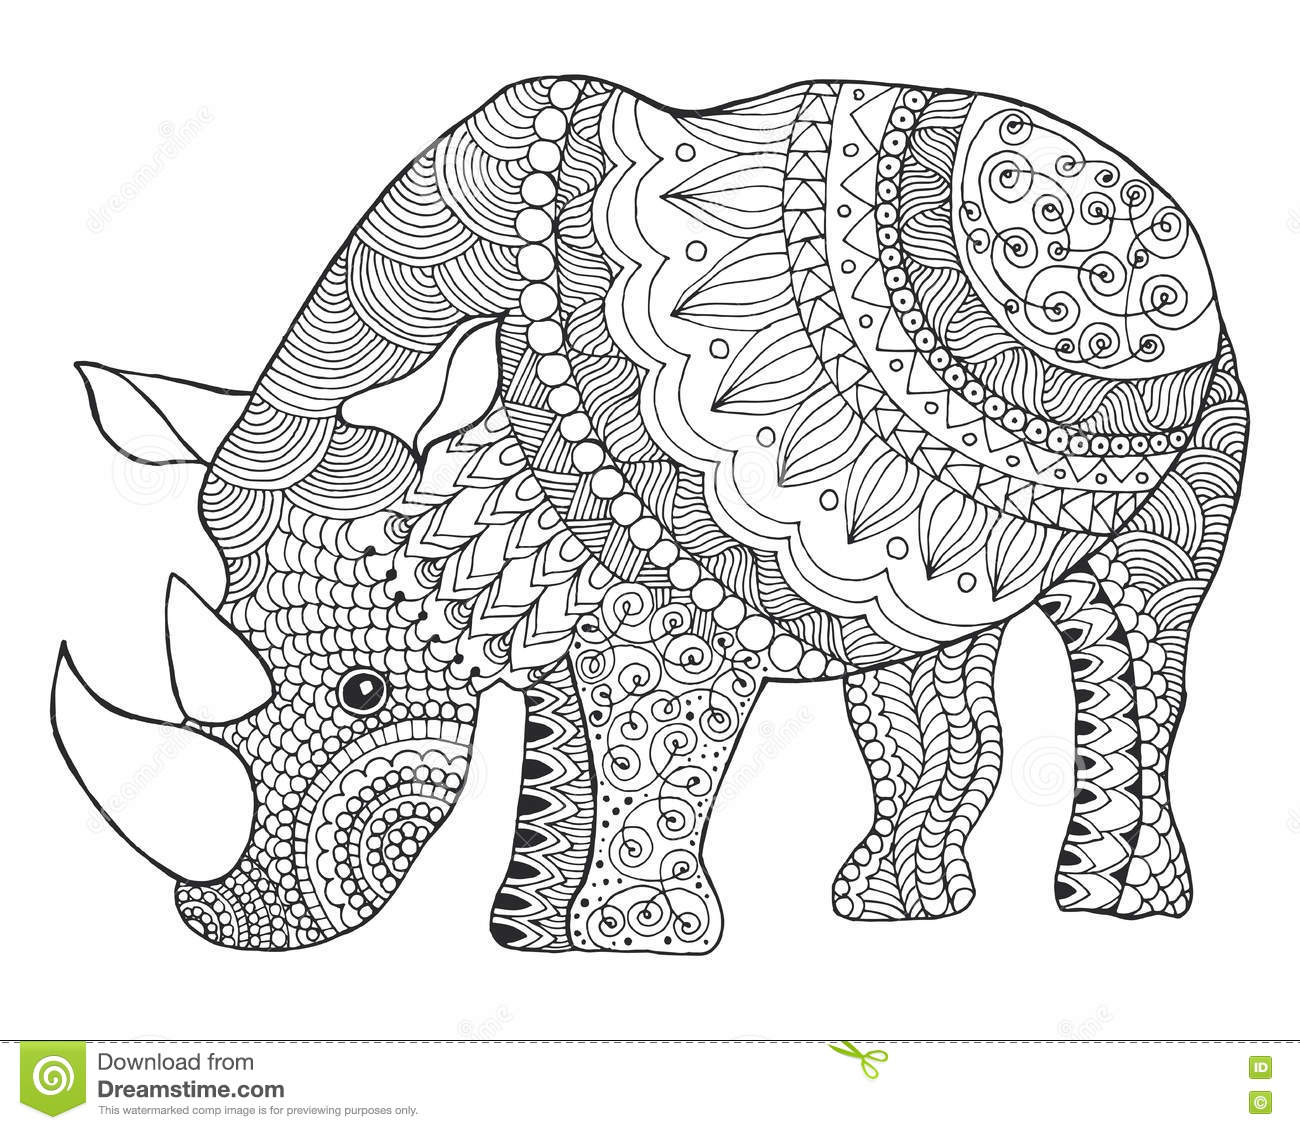 rhinoceros black white hand drawn doodle animal ethnic patterned vector illustration sketch coloring page tattoo poster print